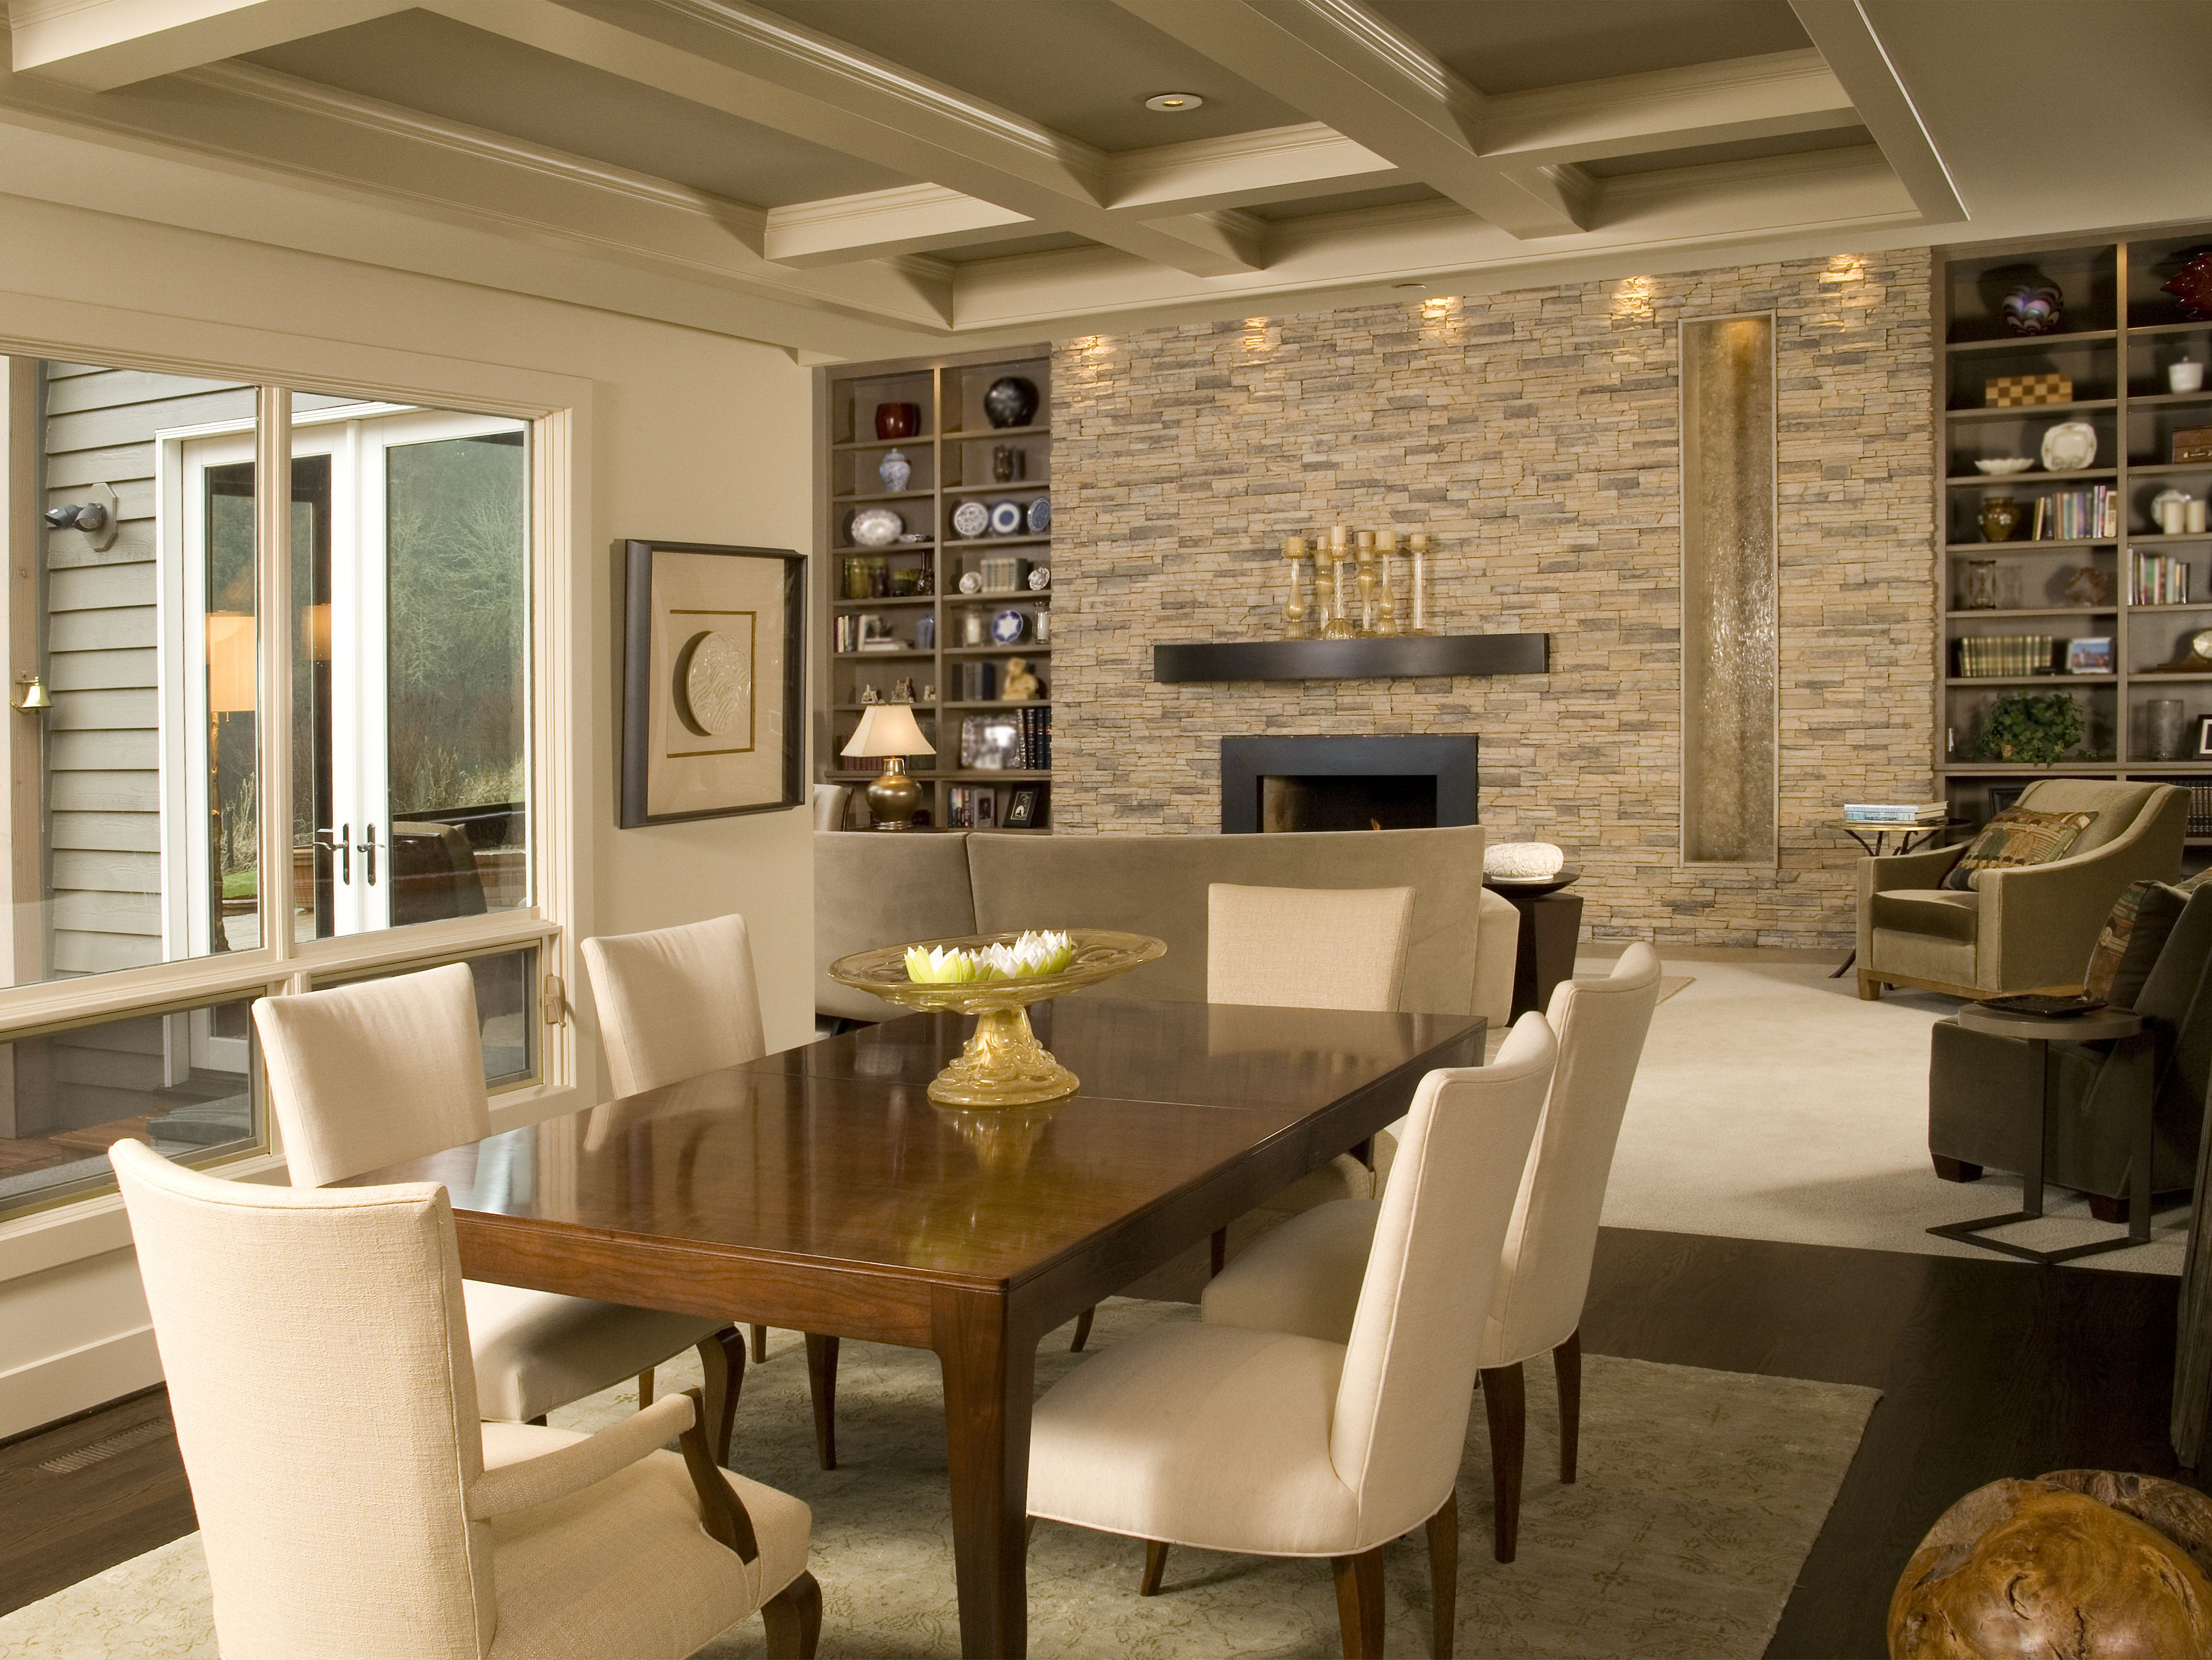 Best ideas about Stacked Stone Accent Wall . Save or Pin Eldorado Stone Accent Walls Alderwood Stacked Stone Now.